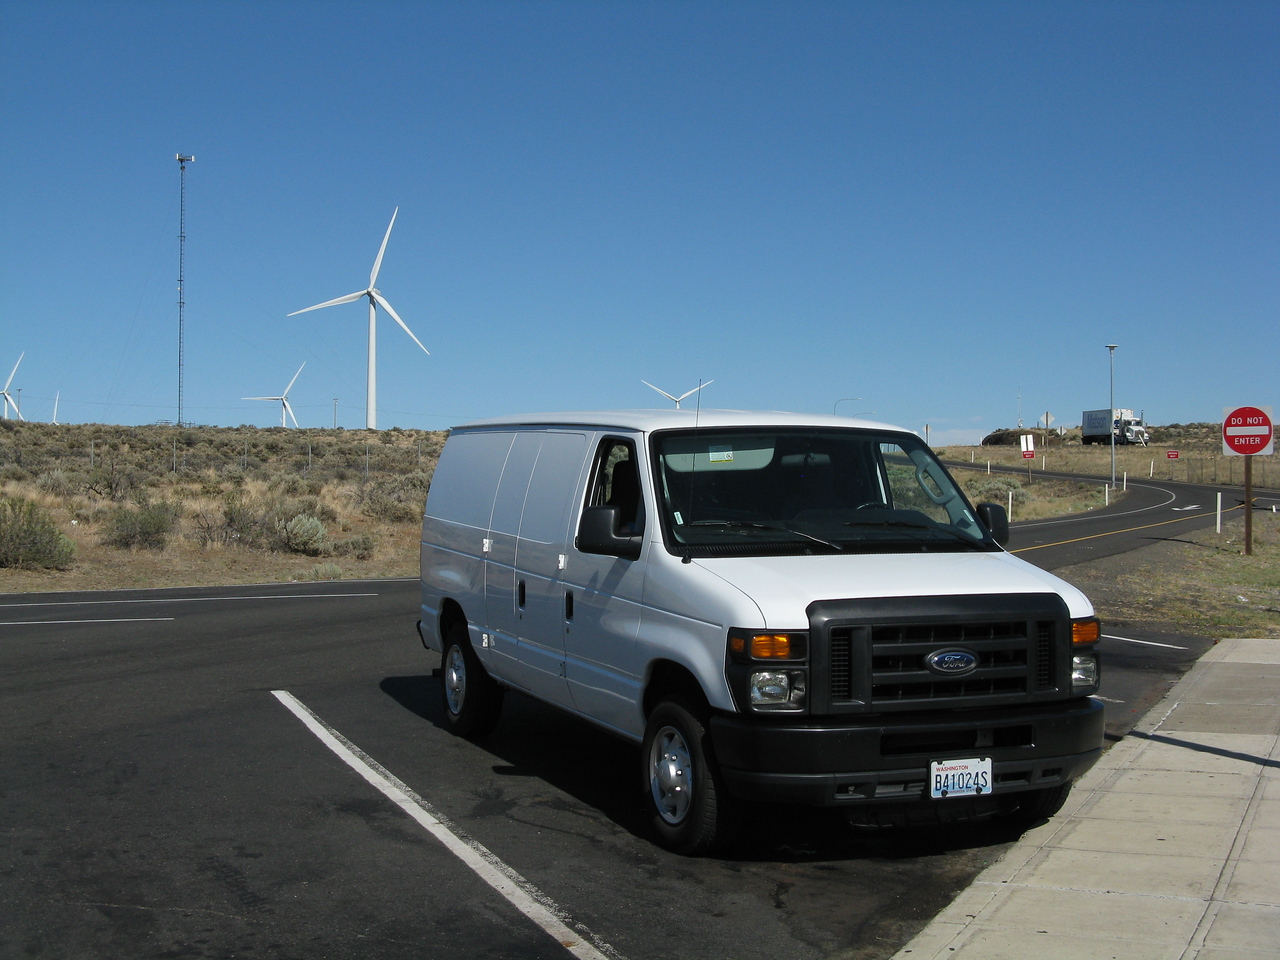 The cargo van drove well, but it  was a gas hog.  It got about 14 miles per gallon.  For the 450 miles or so that we drove it, it used about 32 gallons of gas, which cost $120 at $3.72 per gallon.  We got home to Edmonds, unloaded the van for the last time, and we returned it to Enterprise car rental.  Overall, we had a very successful trip.